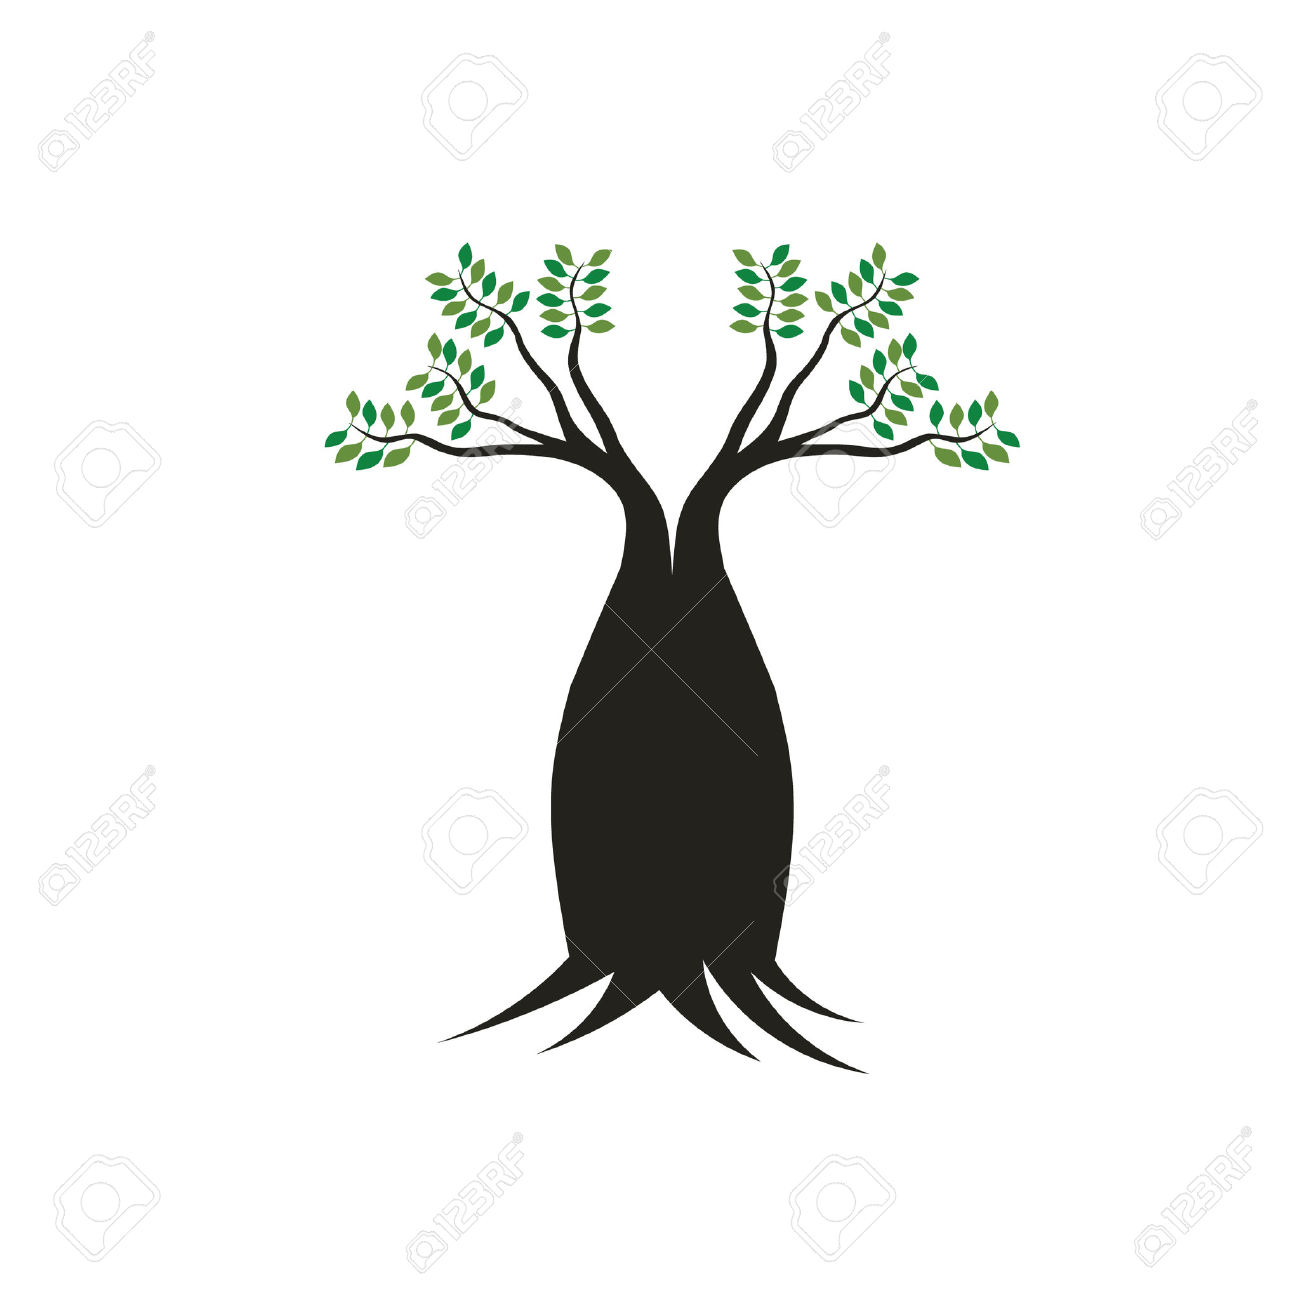 Boab Tree Image Concept Of Mother Tree, Robust,stable, Strong.